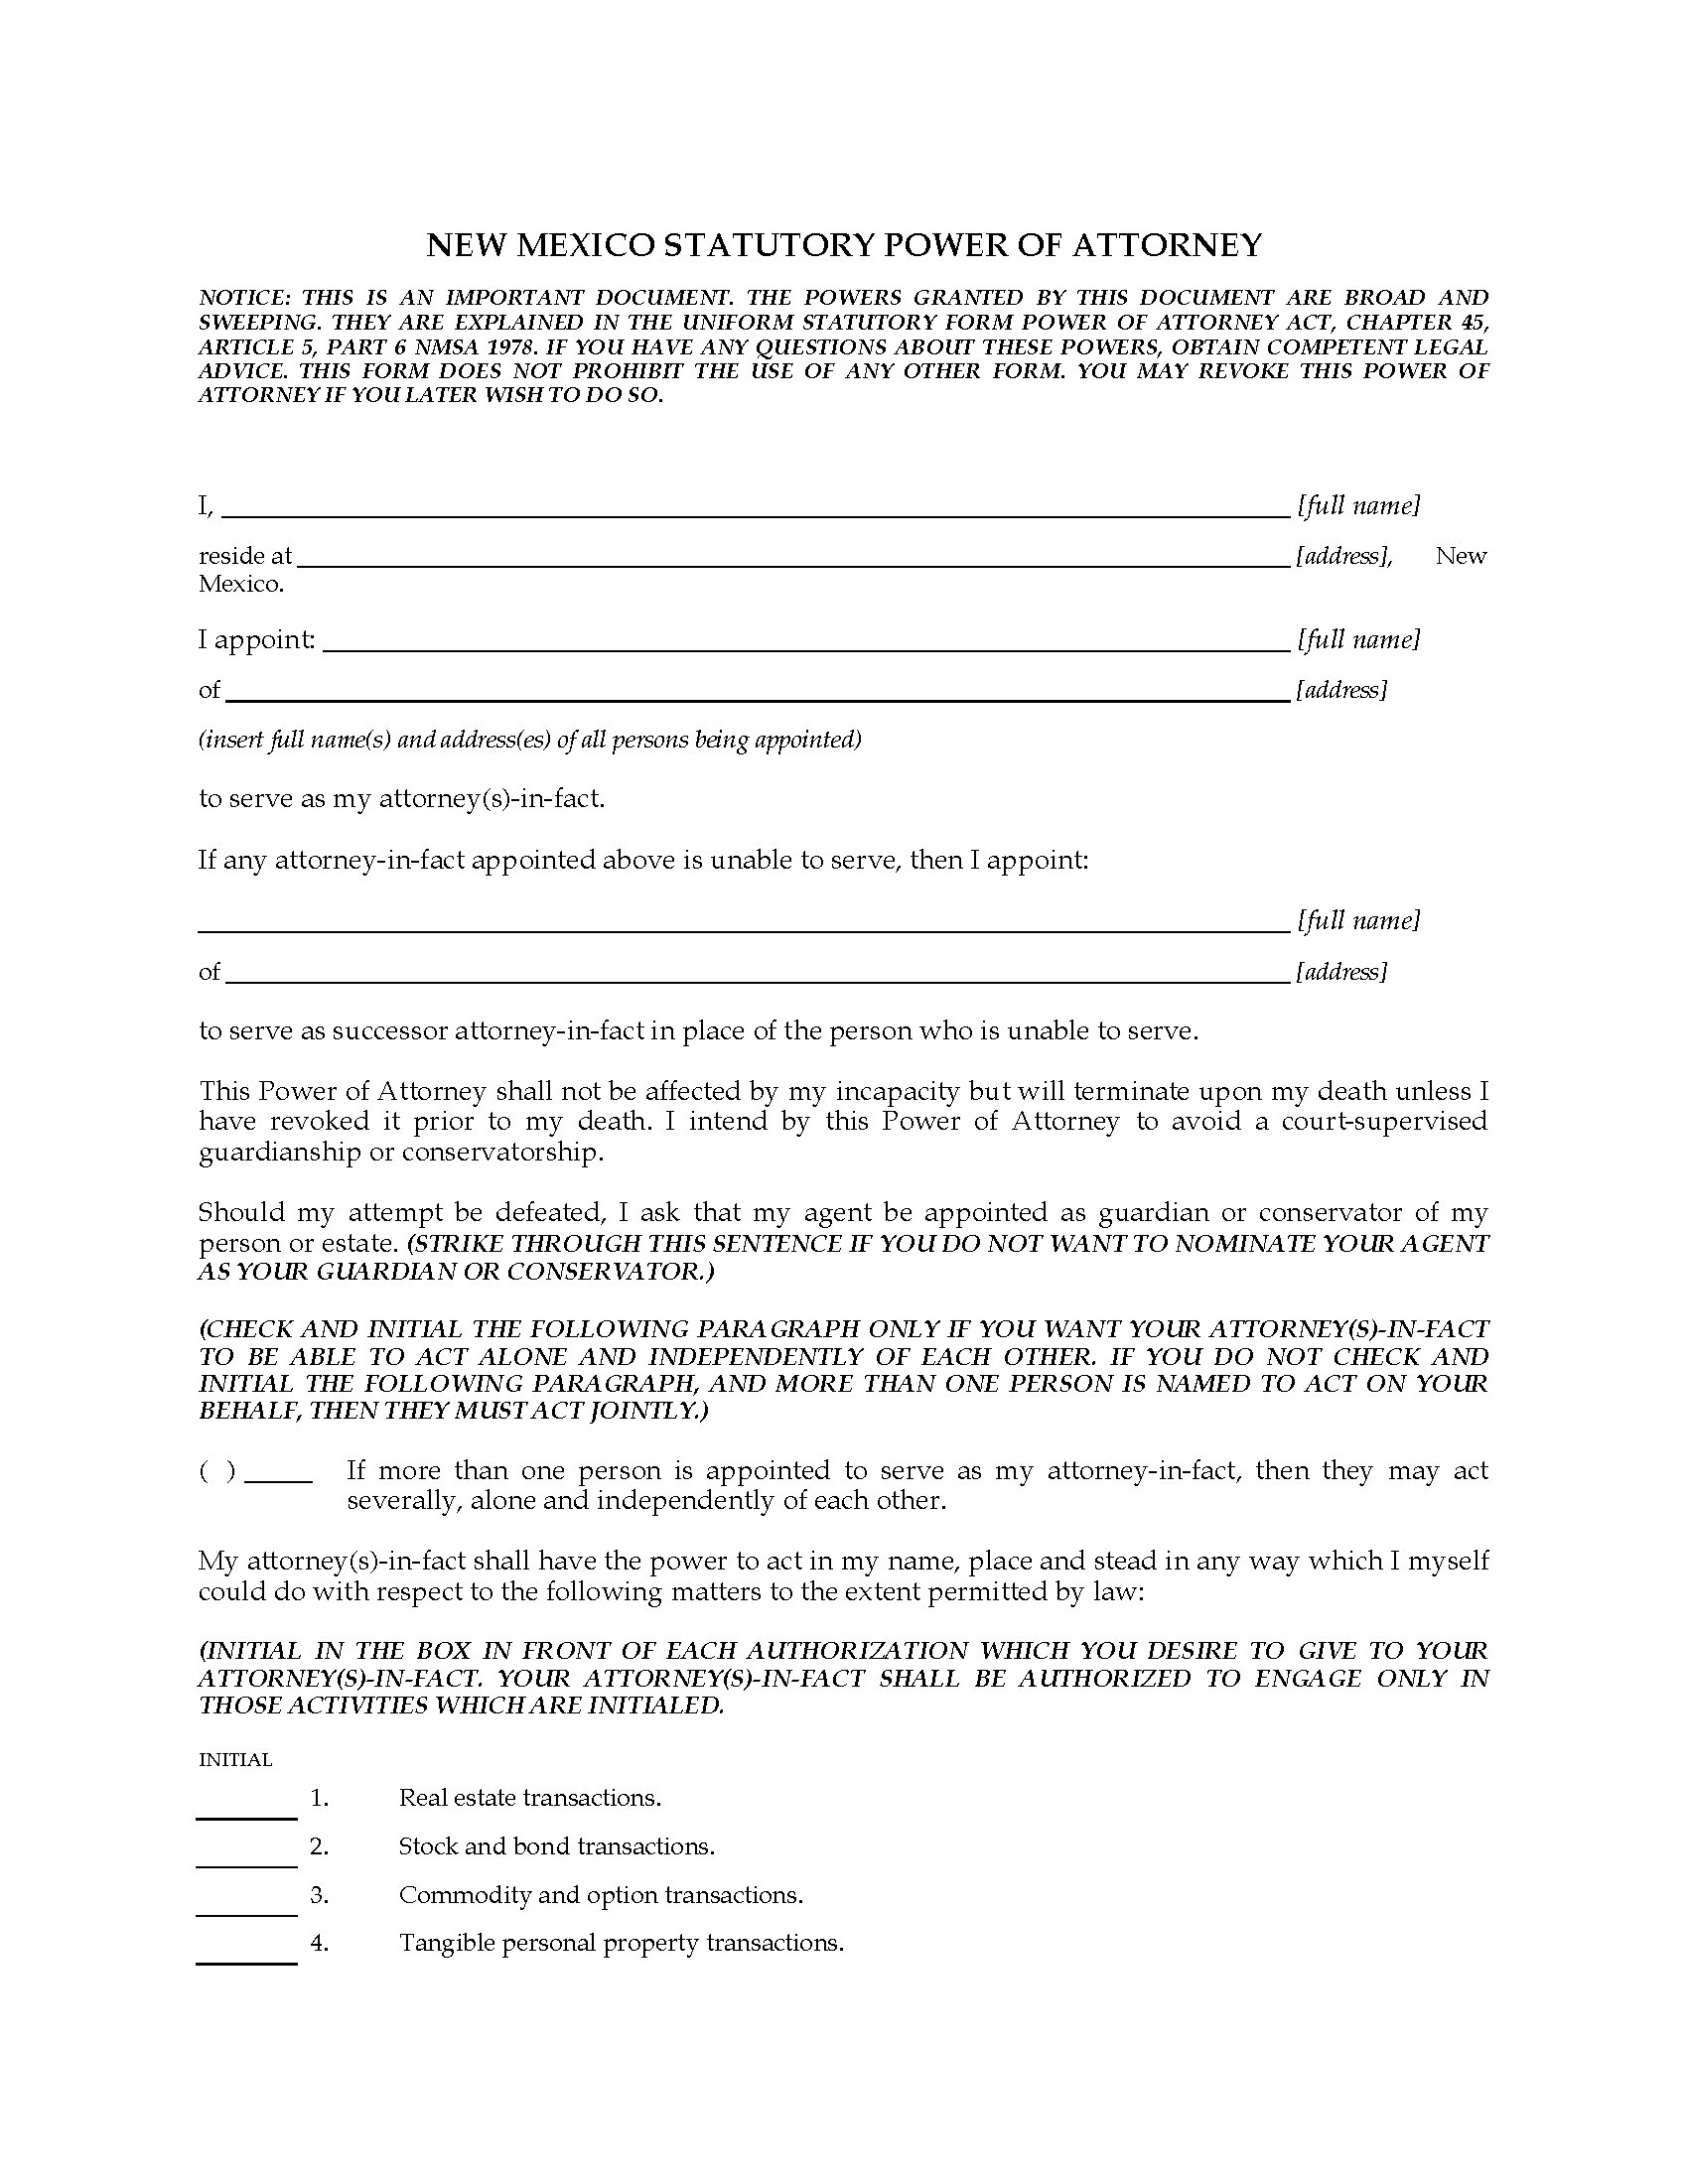 Personal Property Security Act Yukon